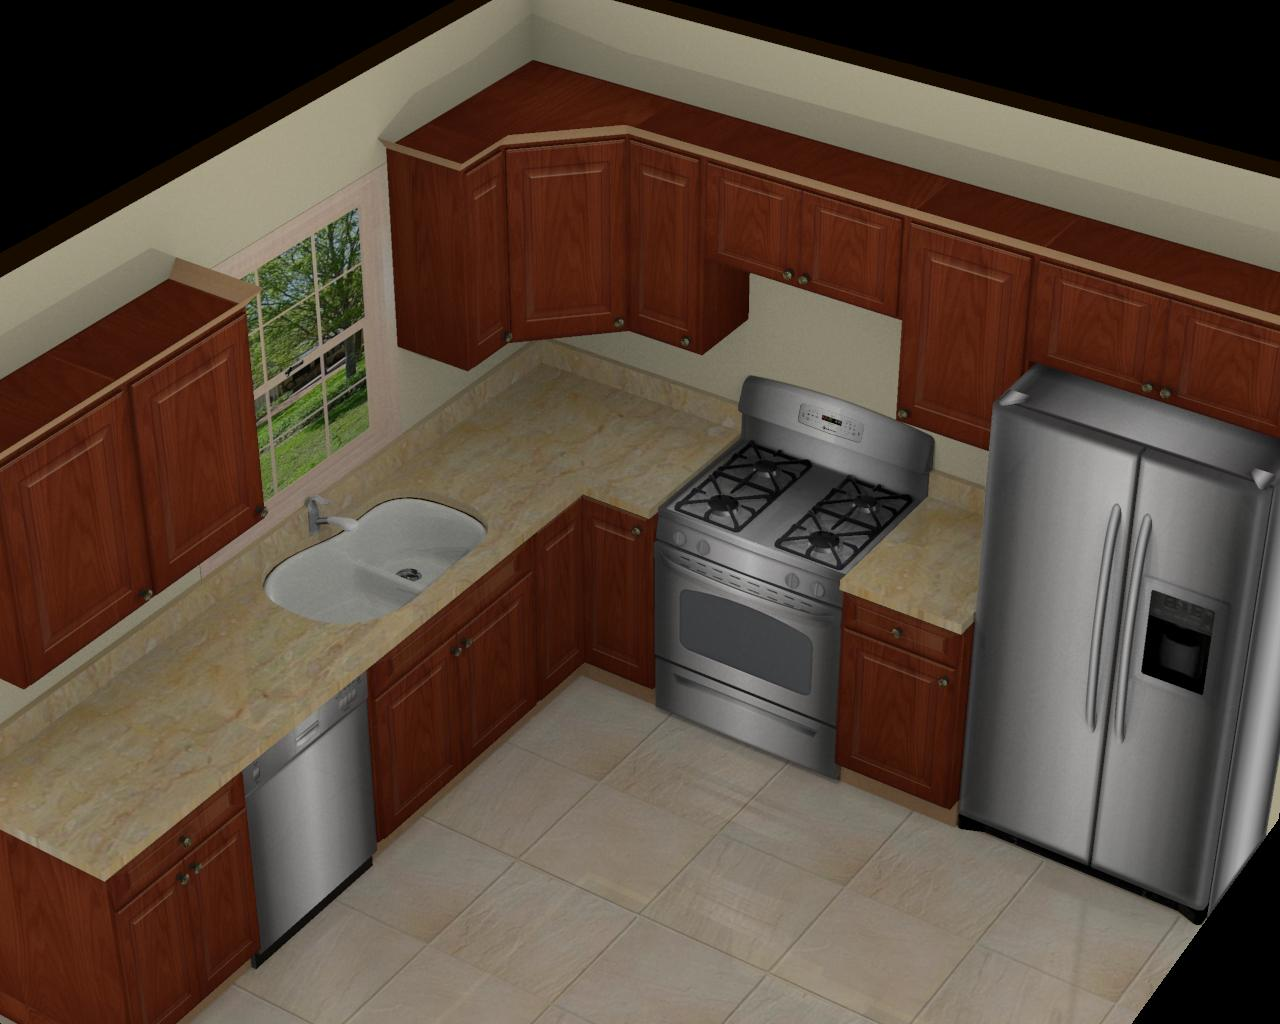 Pin 10x10 kitchen layout image search results on pinterest for Ideas for 10 x 16 kitchen